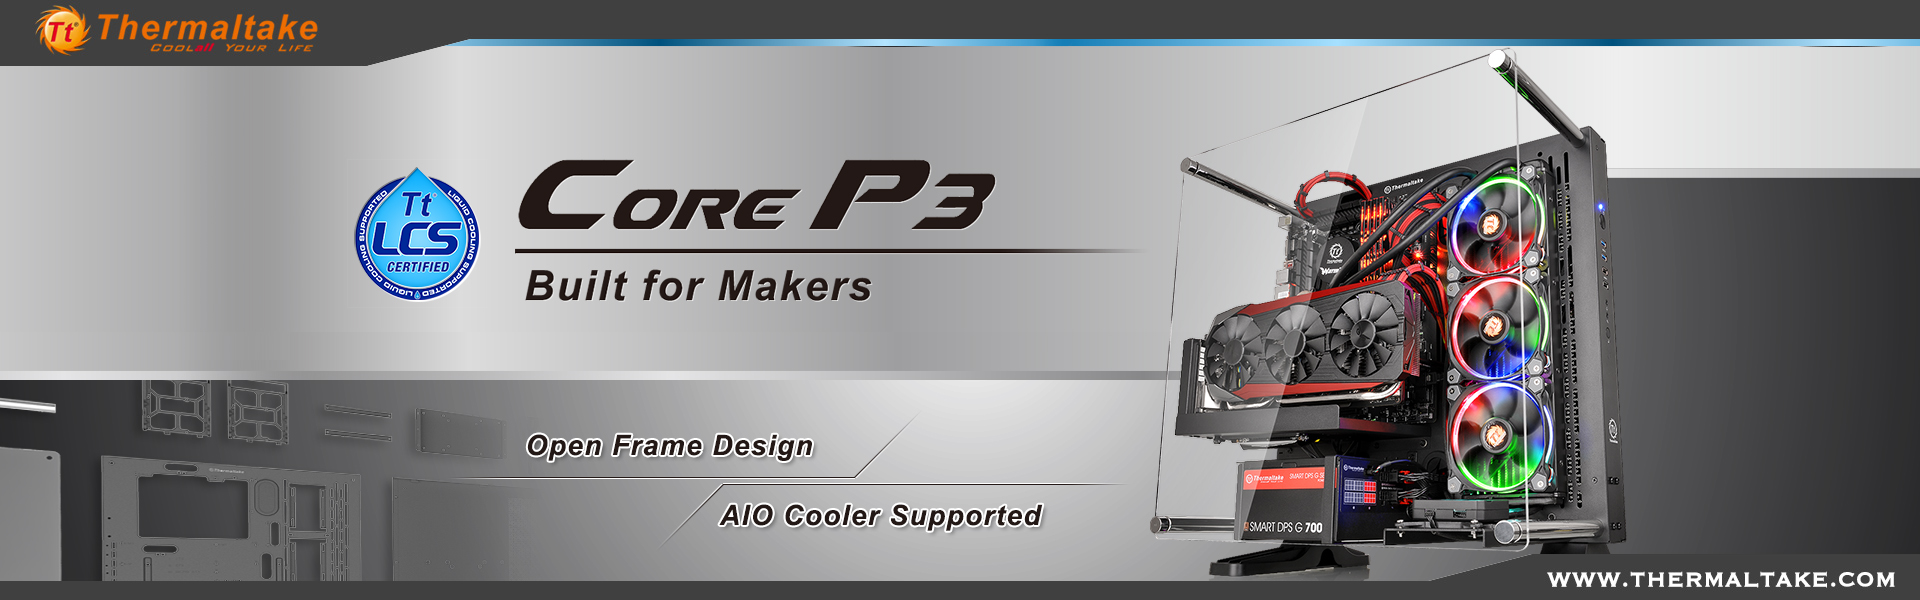 Thermaltake New Core P3 ATX Wall Mount Panoramic Viewing Chassis